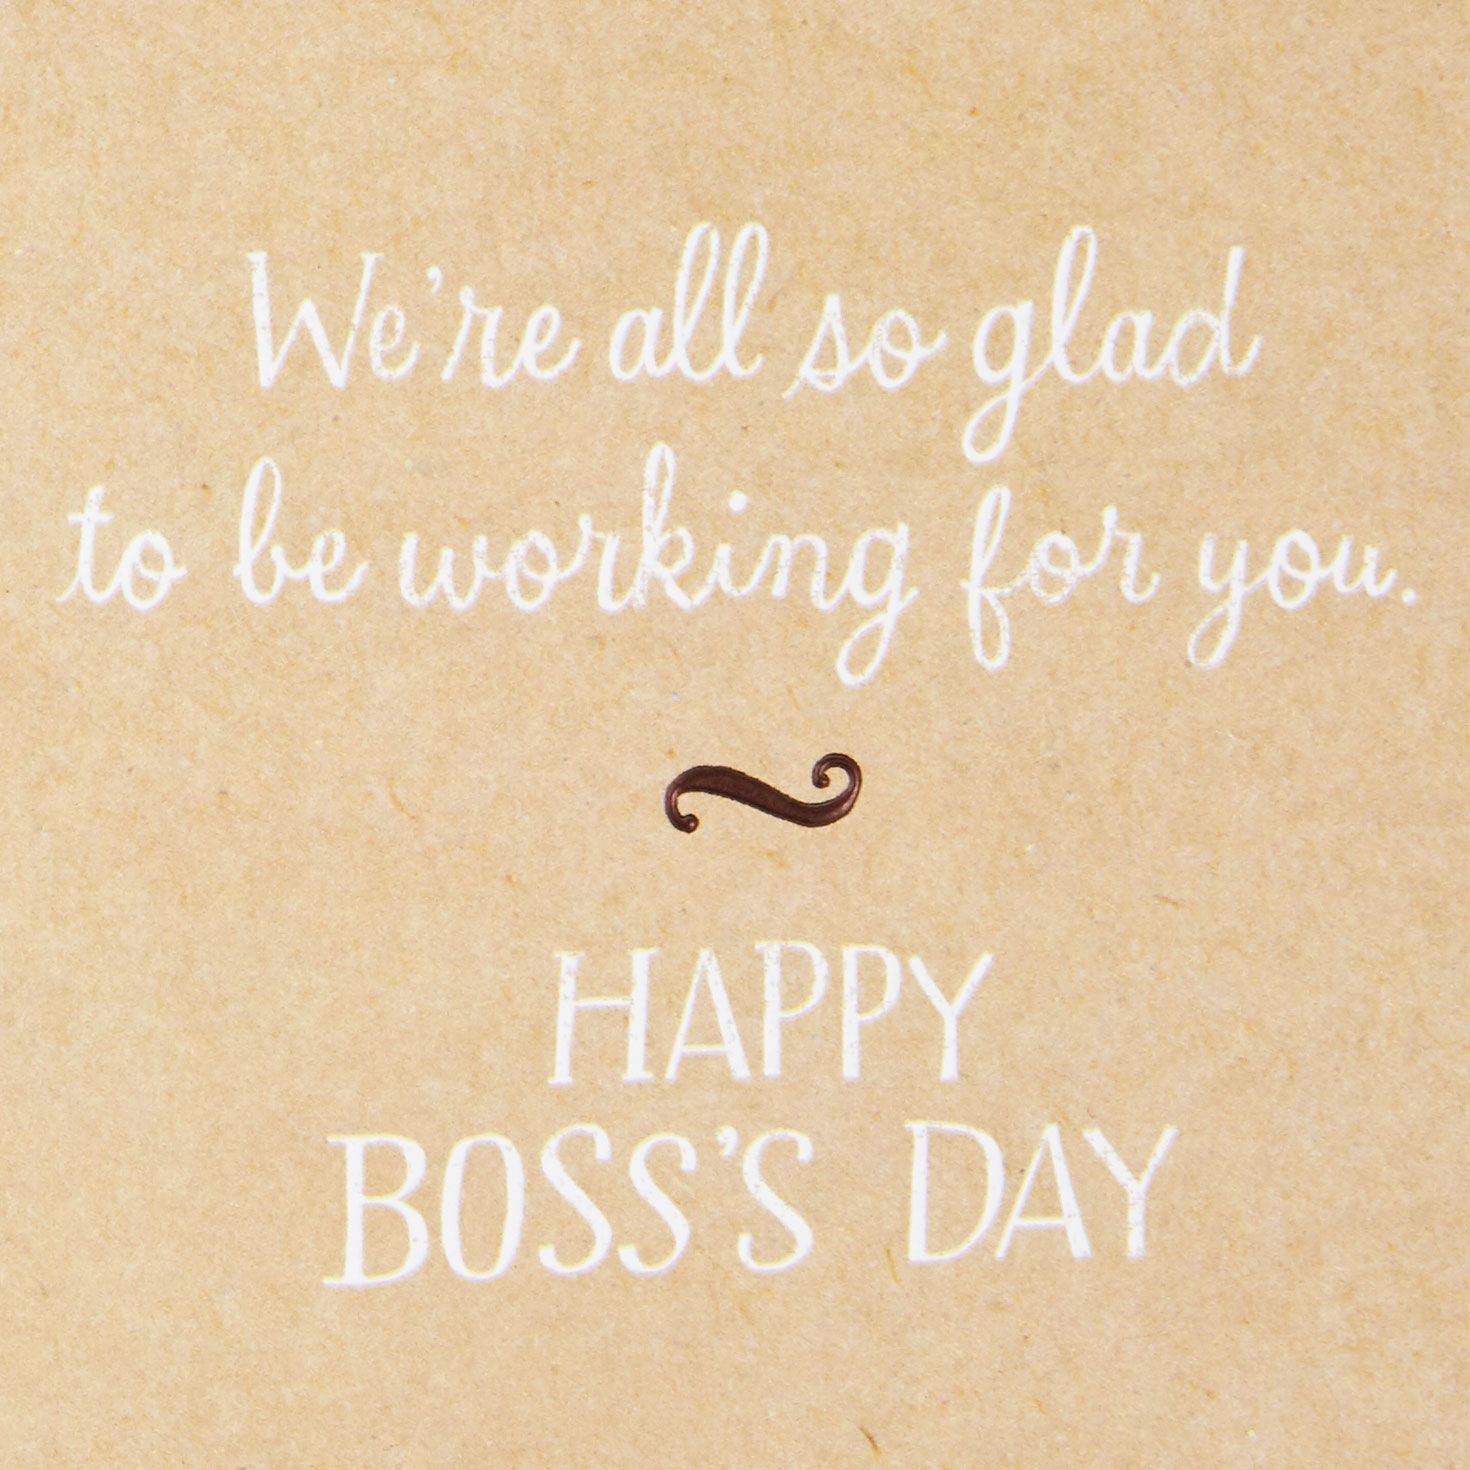 graphic about Happy Boss's Day Cards Printable called Nationwide Manager Working day Bosss Working day Hallmark